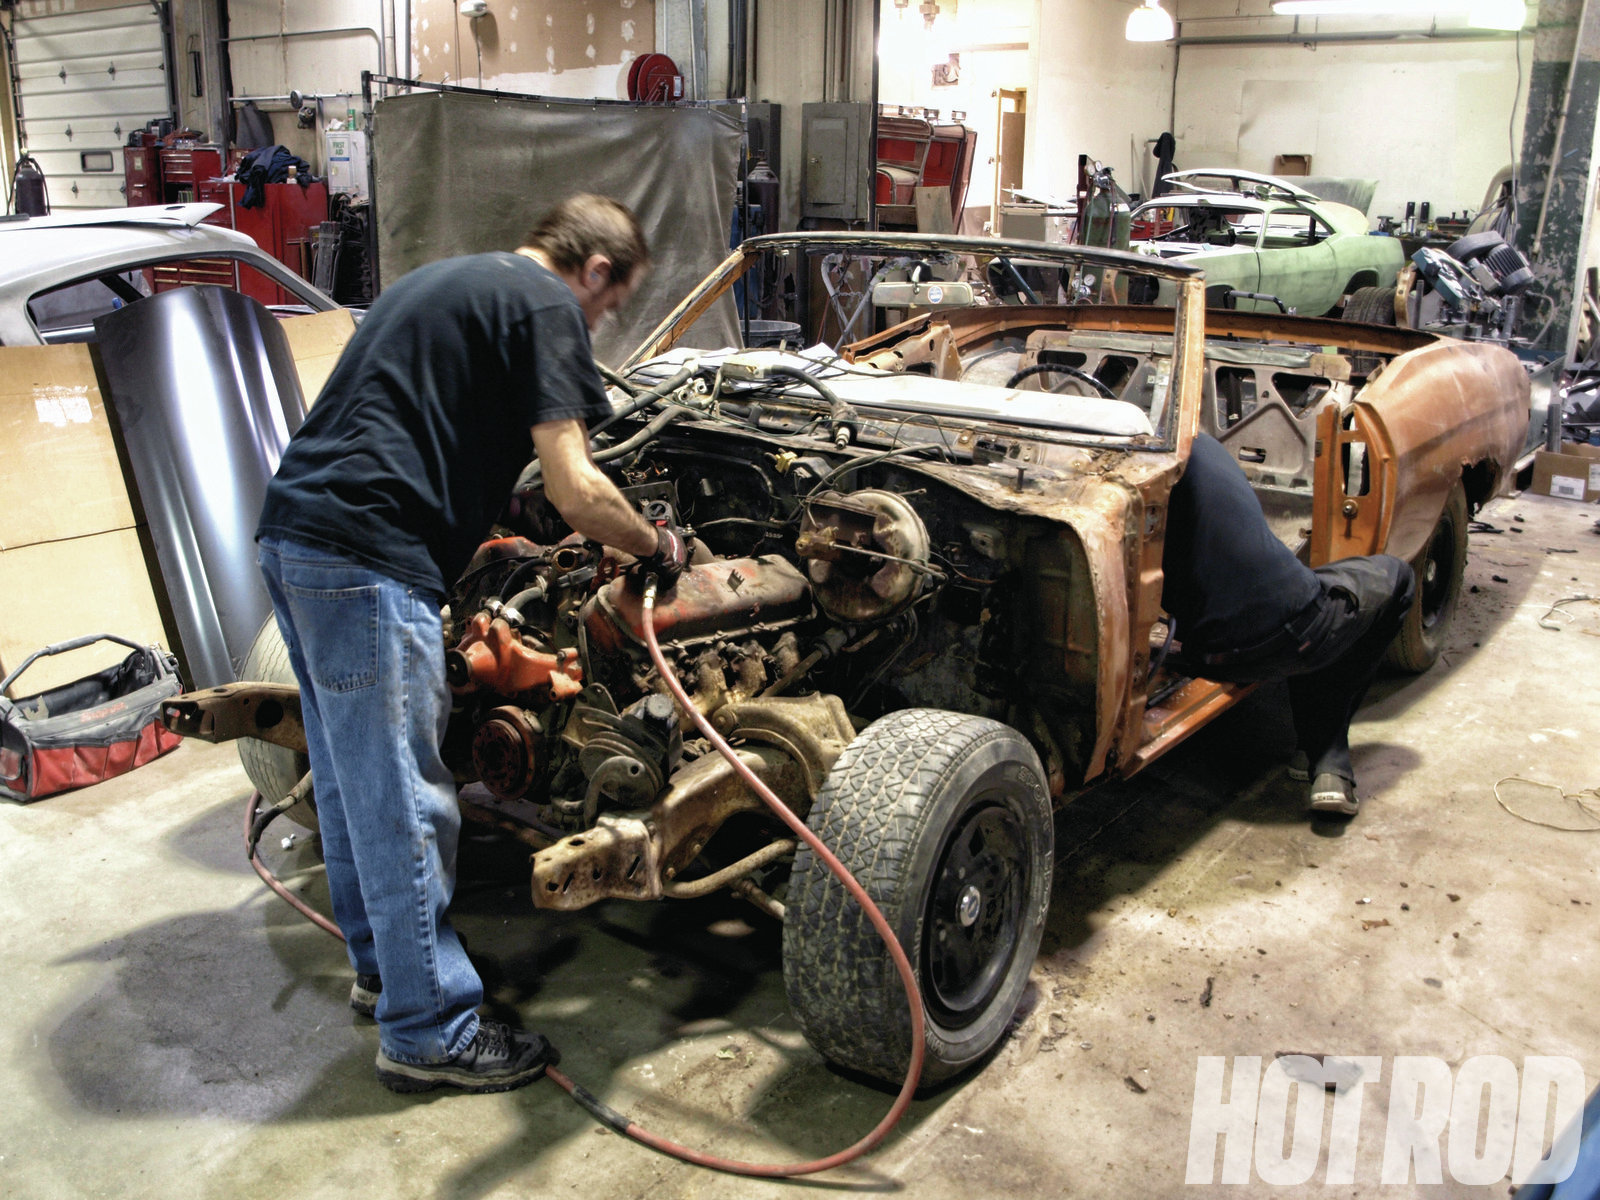 The front clip was removed, and the motor and trans were pulled for inspection. Since both the 402 big-block and Muncie four-speed were original to the Chevelle, Precision Restorations rebuilt them back to factory specifications in-house.